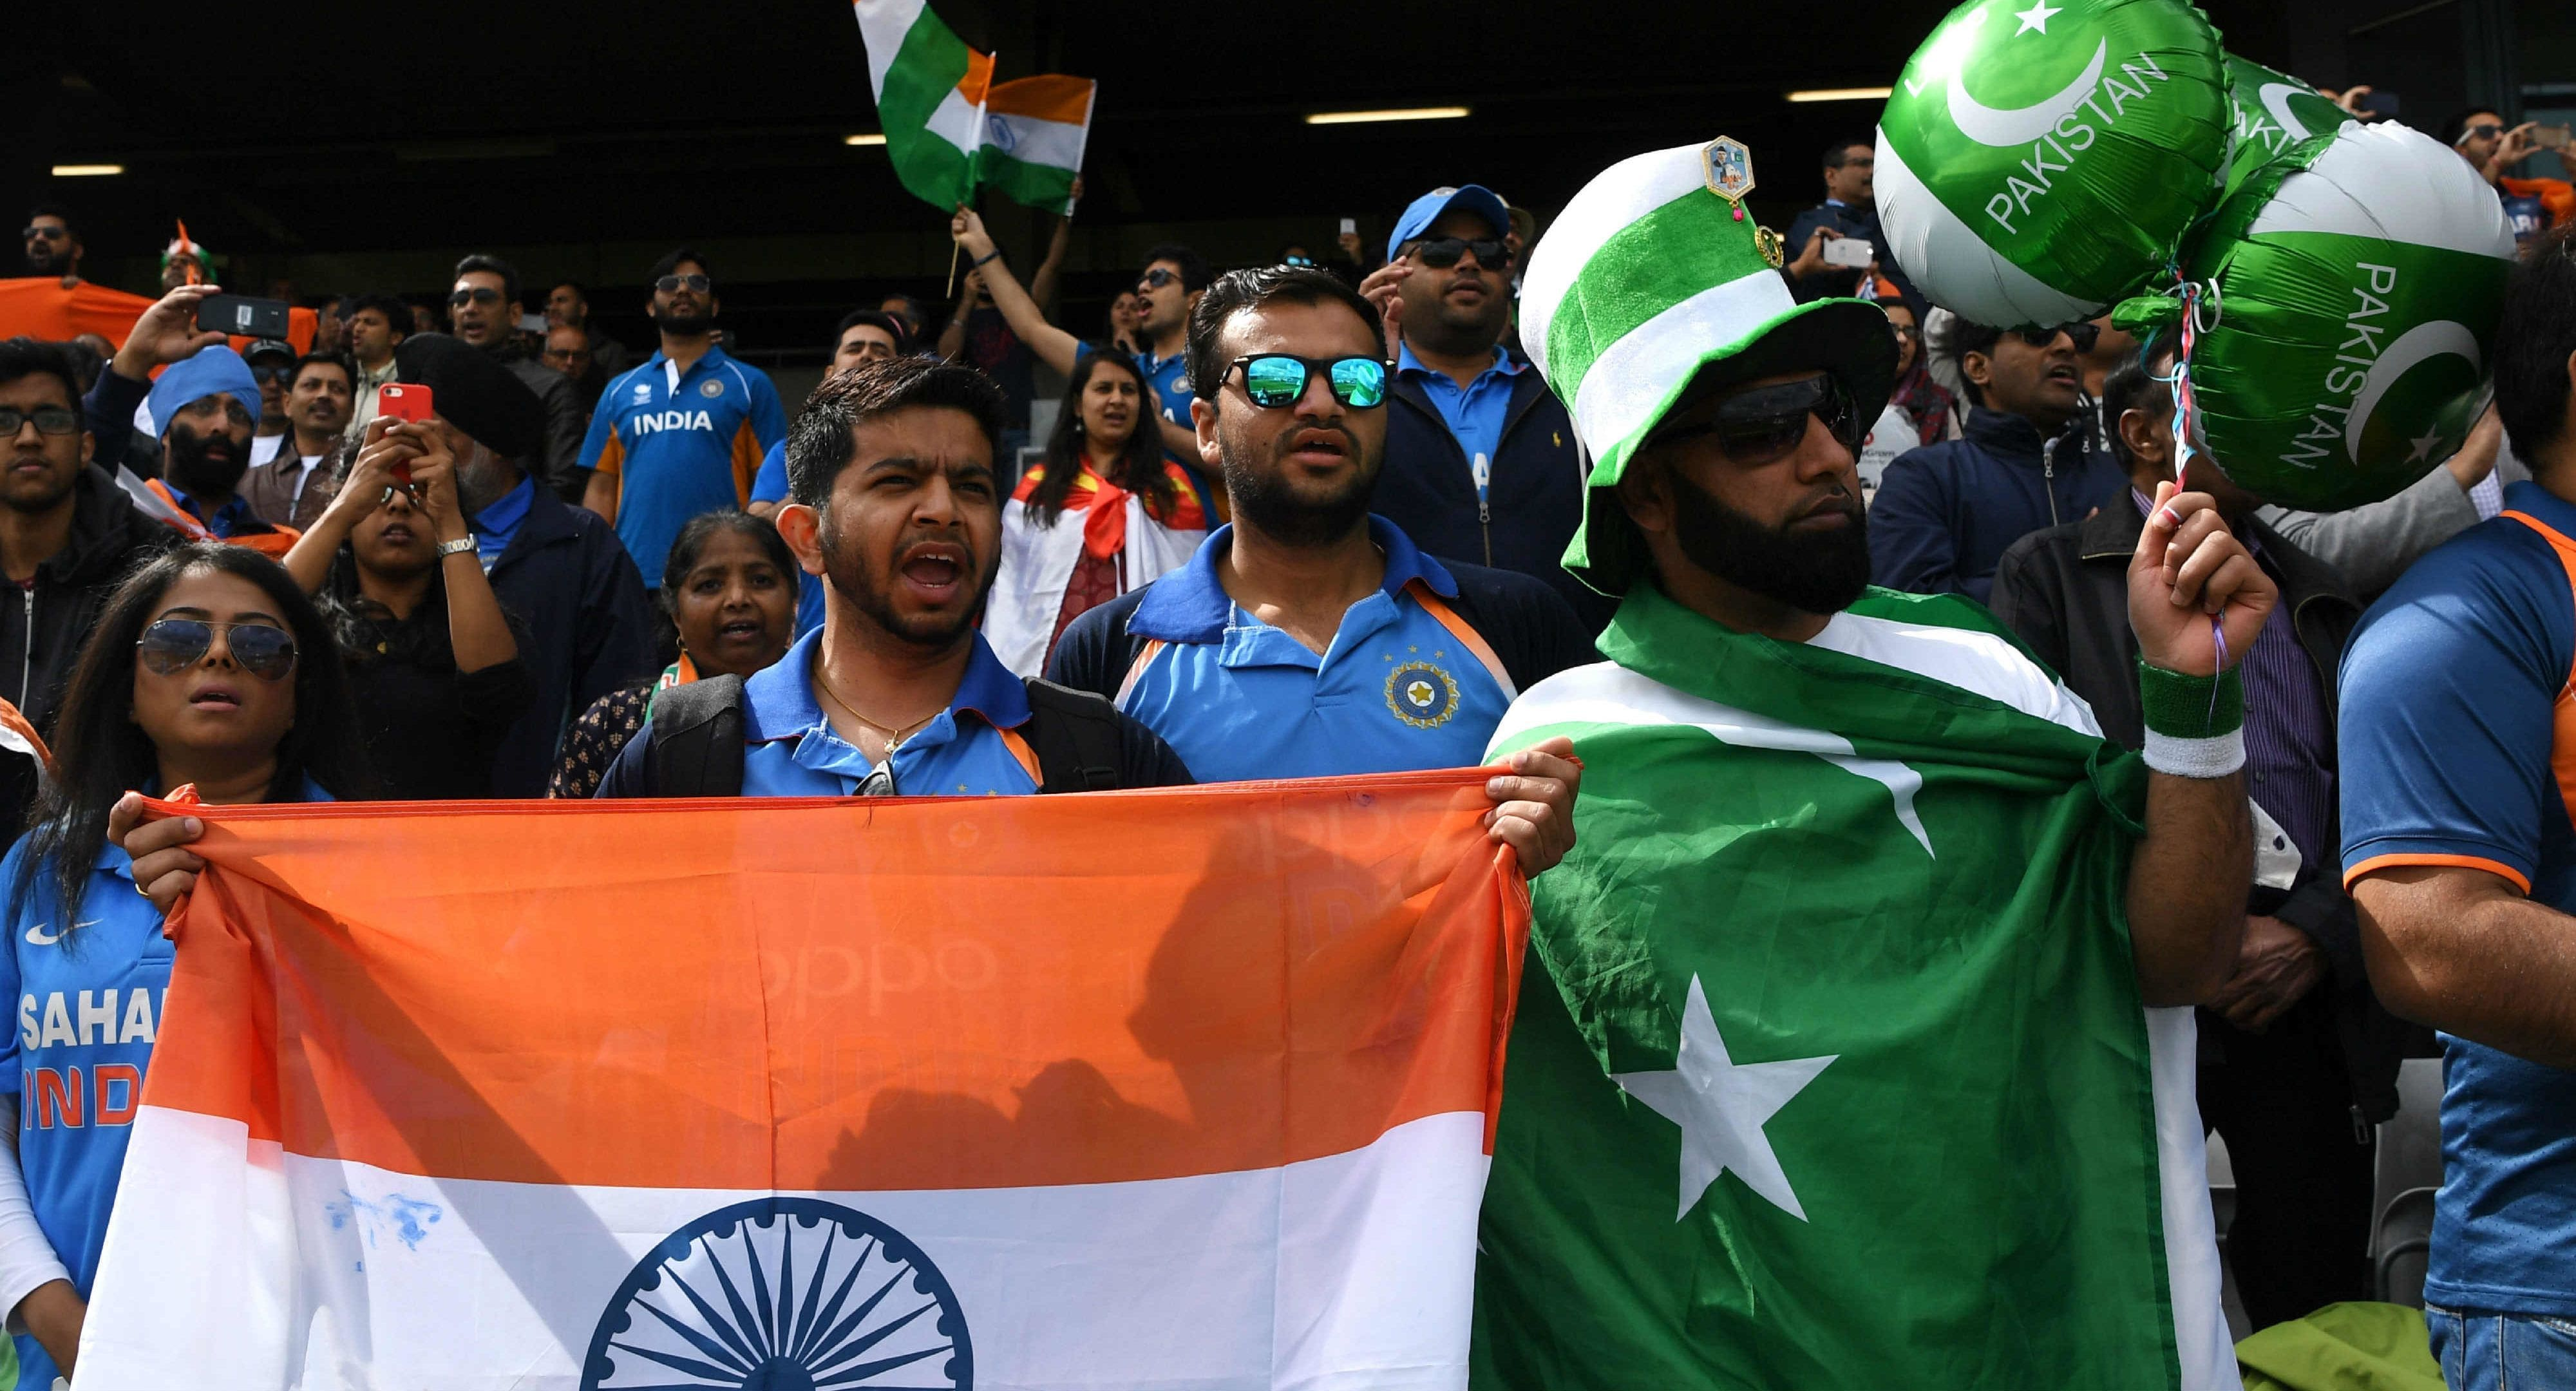 ICC World Cup 2019, ICC Cricket World cup 2019, India vs Pakistan In ICC World Cup, IND vs PAK in ICC World Cup, India winning streak against pakistan in world cup, India Pakistan match ticket, Buy India vs Pakistan ticket, Buy India vs Pakistan ticket online,